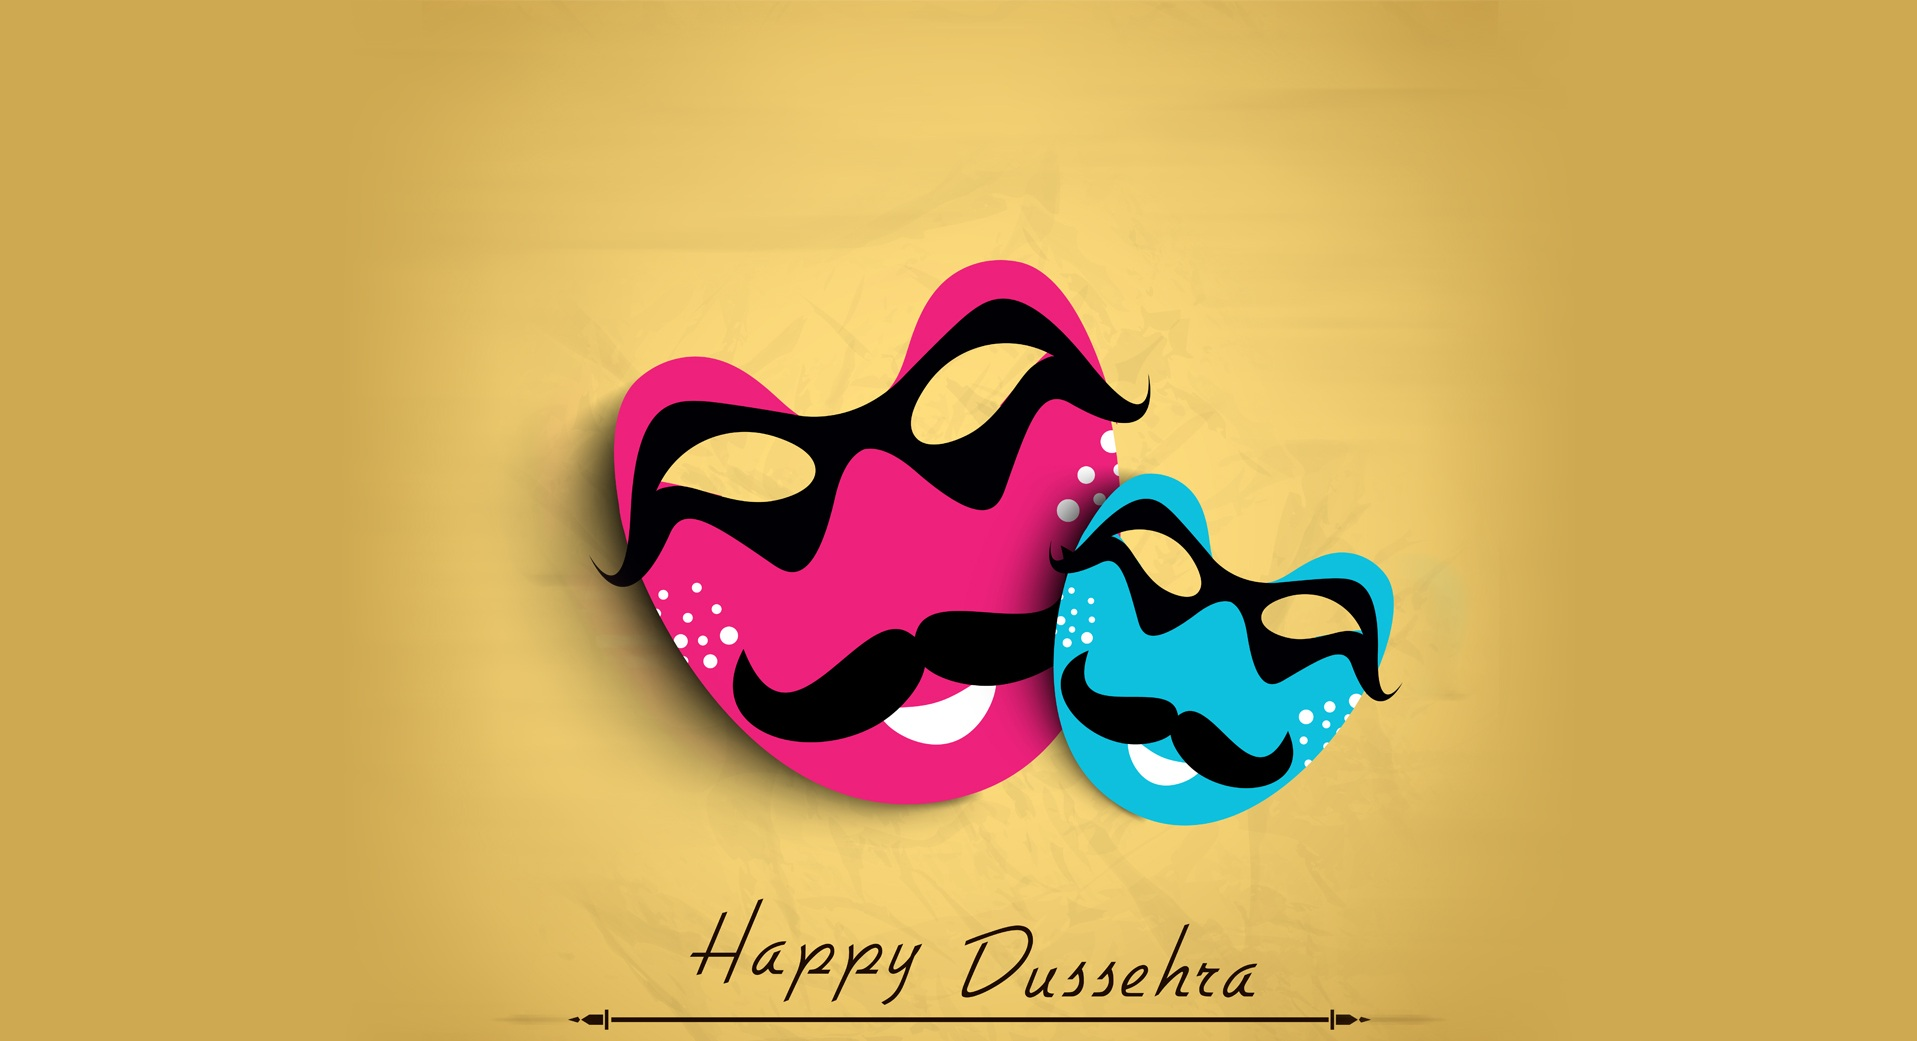 Happy Dussehra Vijayadashami Wishes HD Wallpaper & Photos